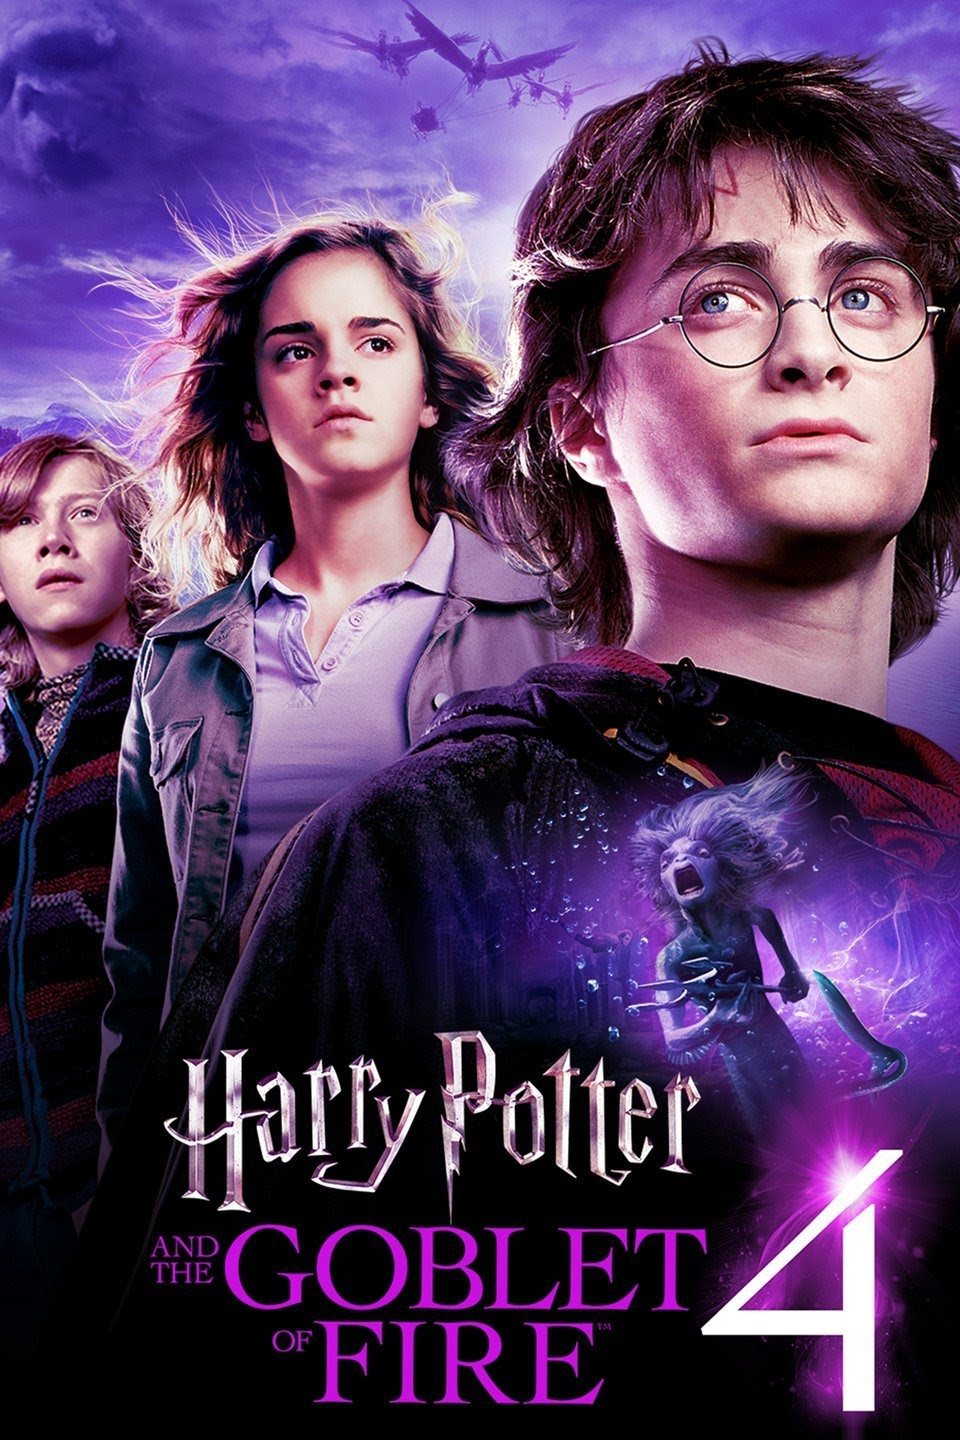 Harry Potter and the Goblet of fire 4 Download